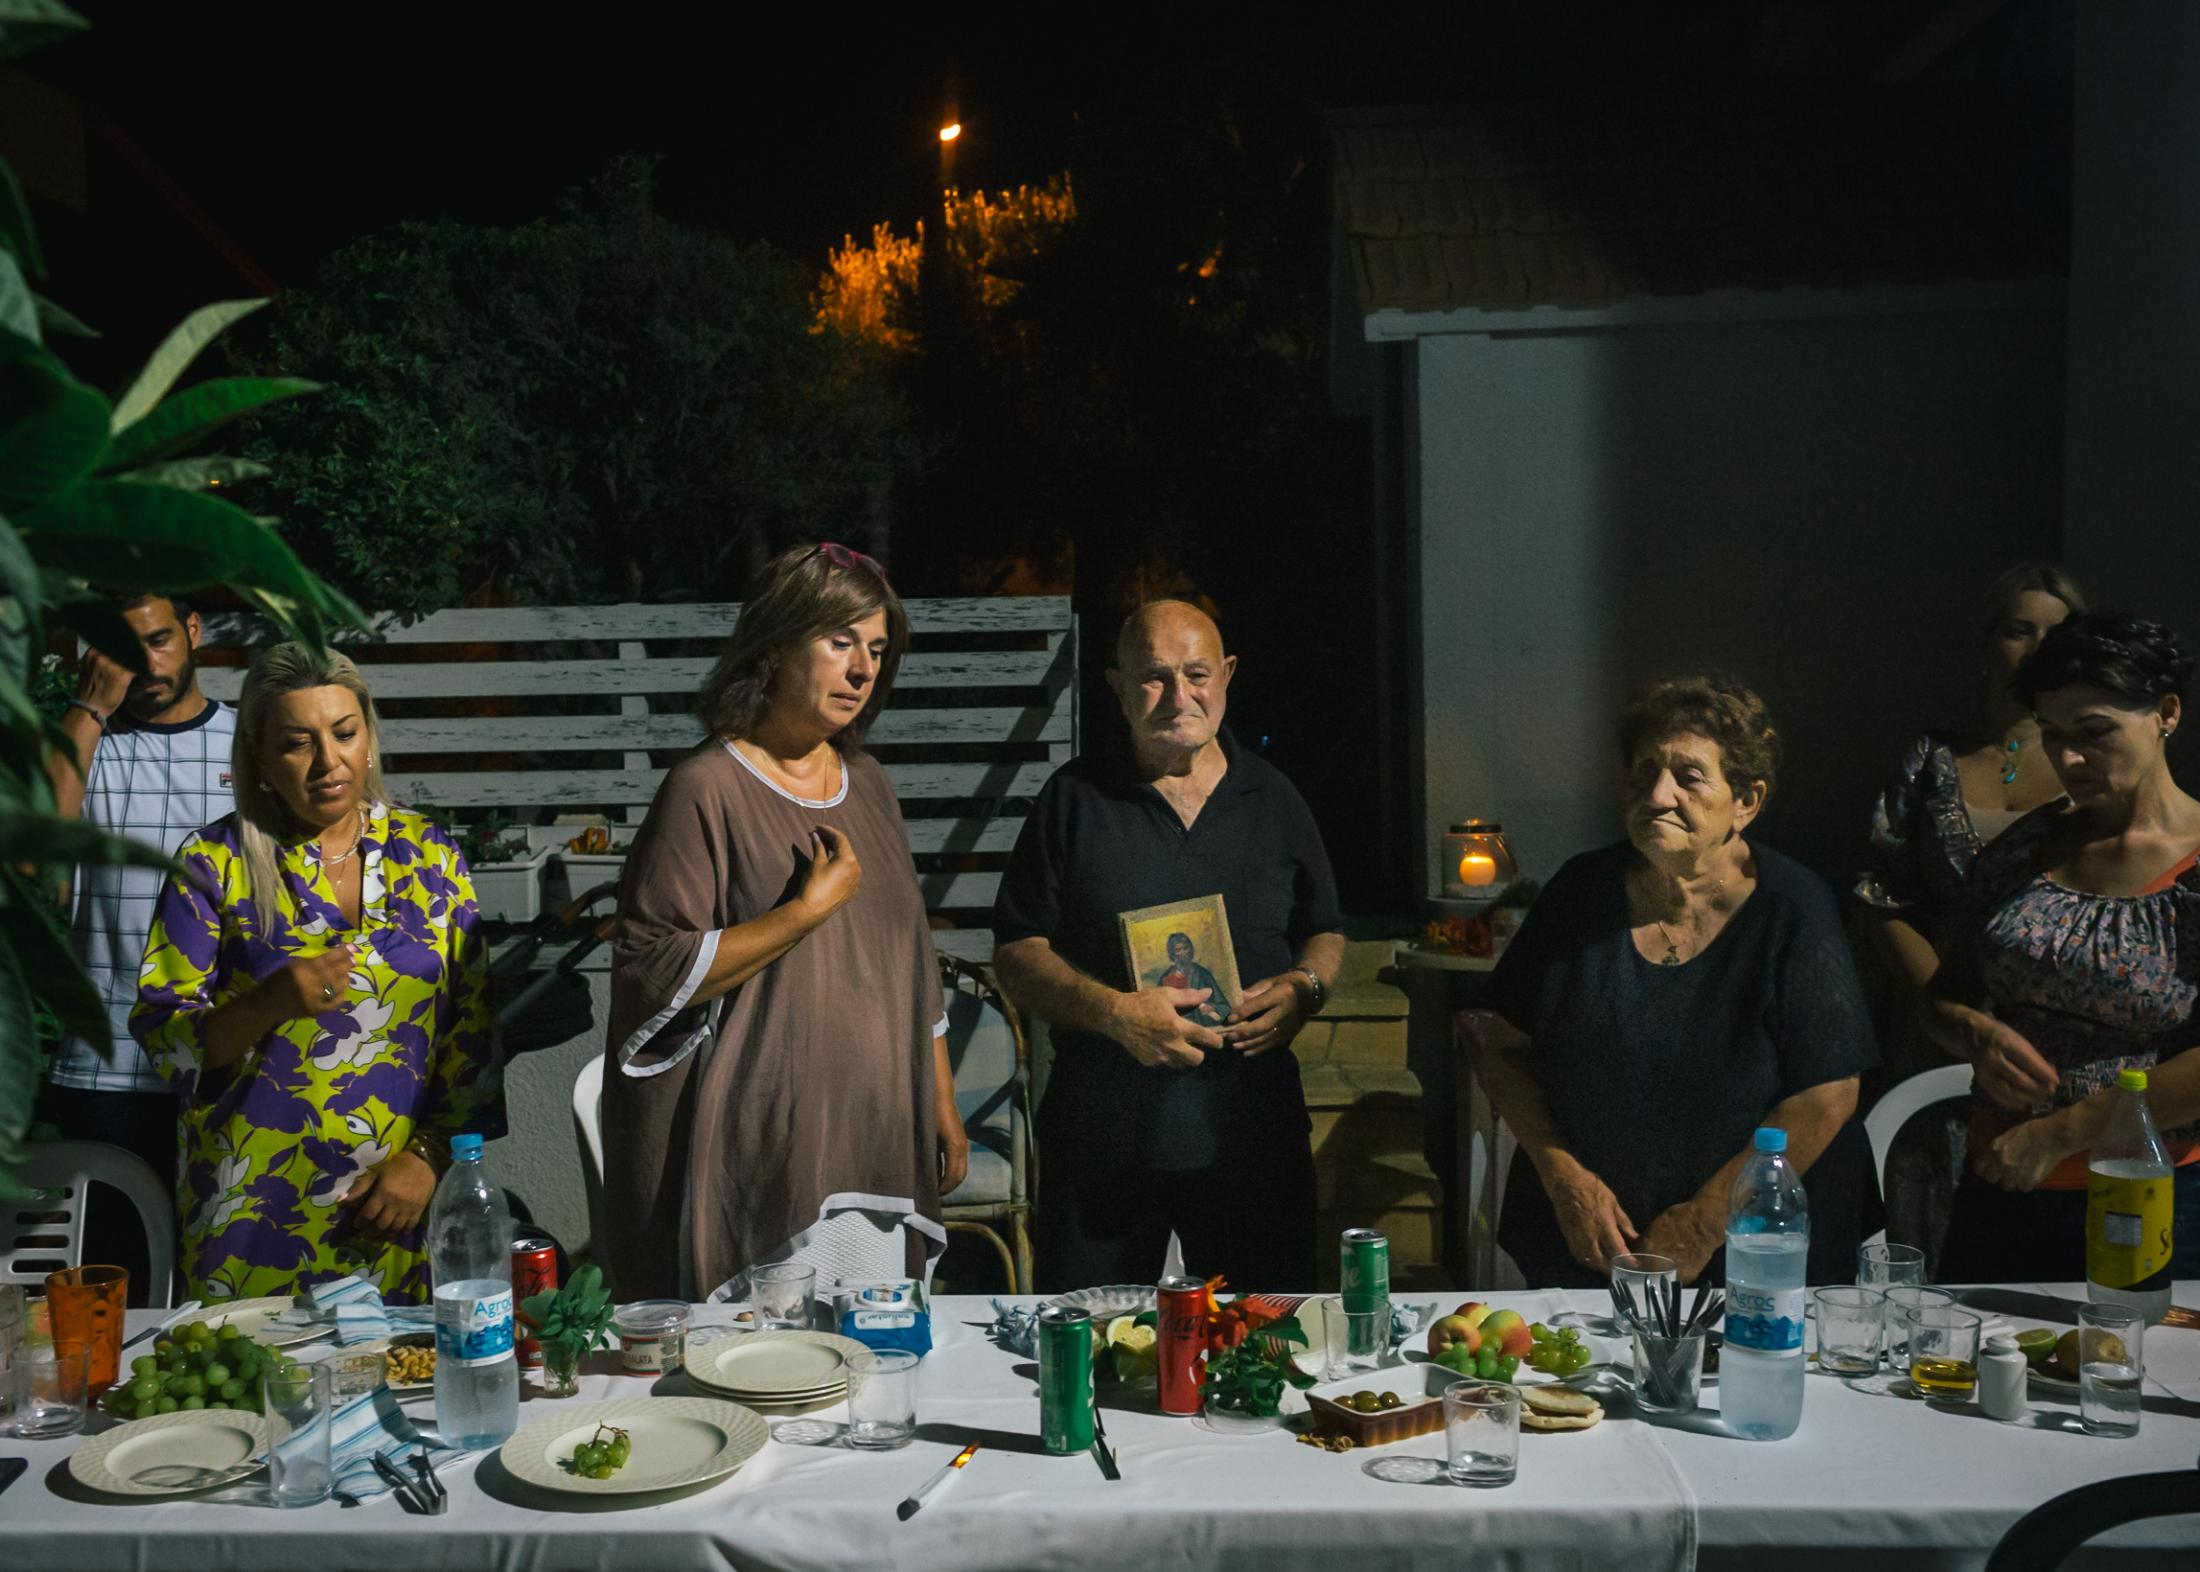 On the eve of her crossing over to Turkish territory in Northern Cyprus, Tasoula Hadjitofi visits the family of her godfather in a neighboring village of Famagusta.